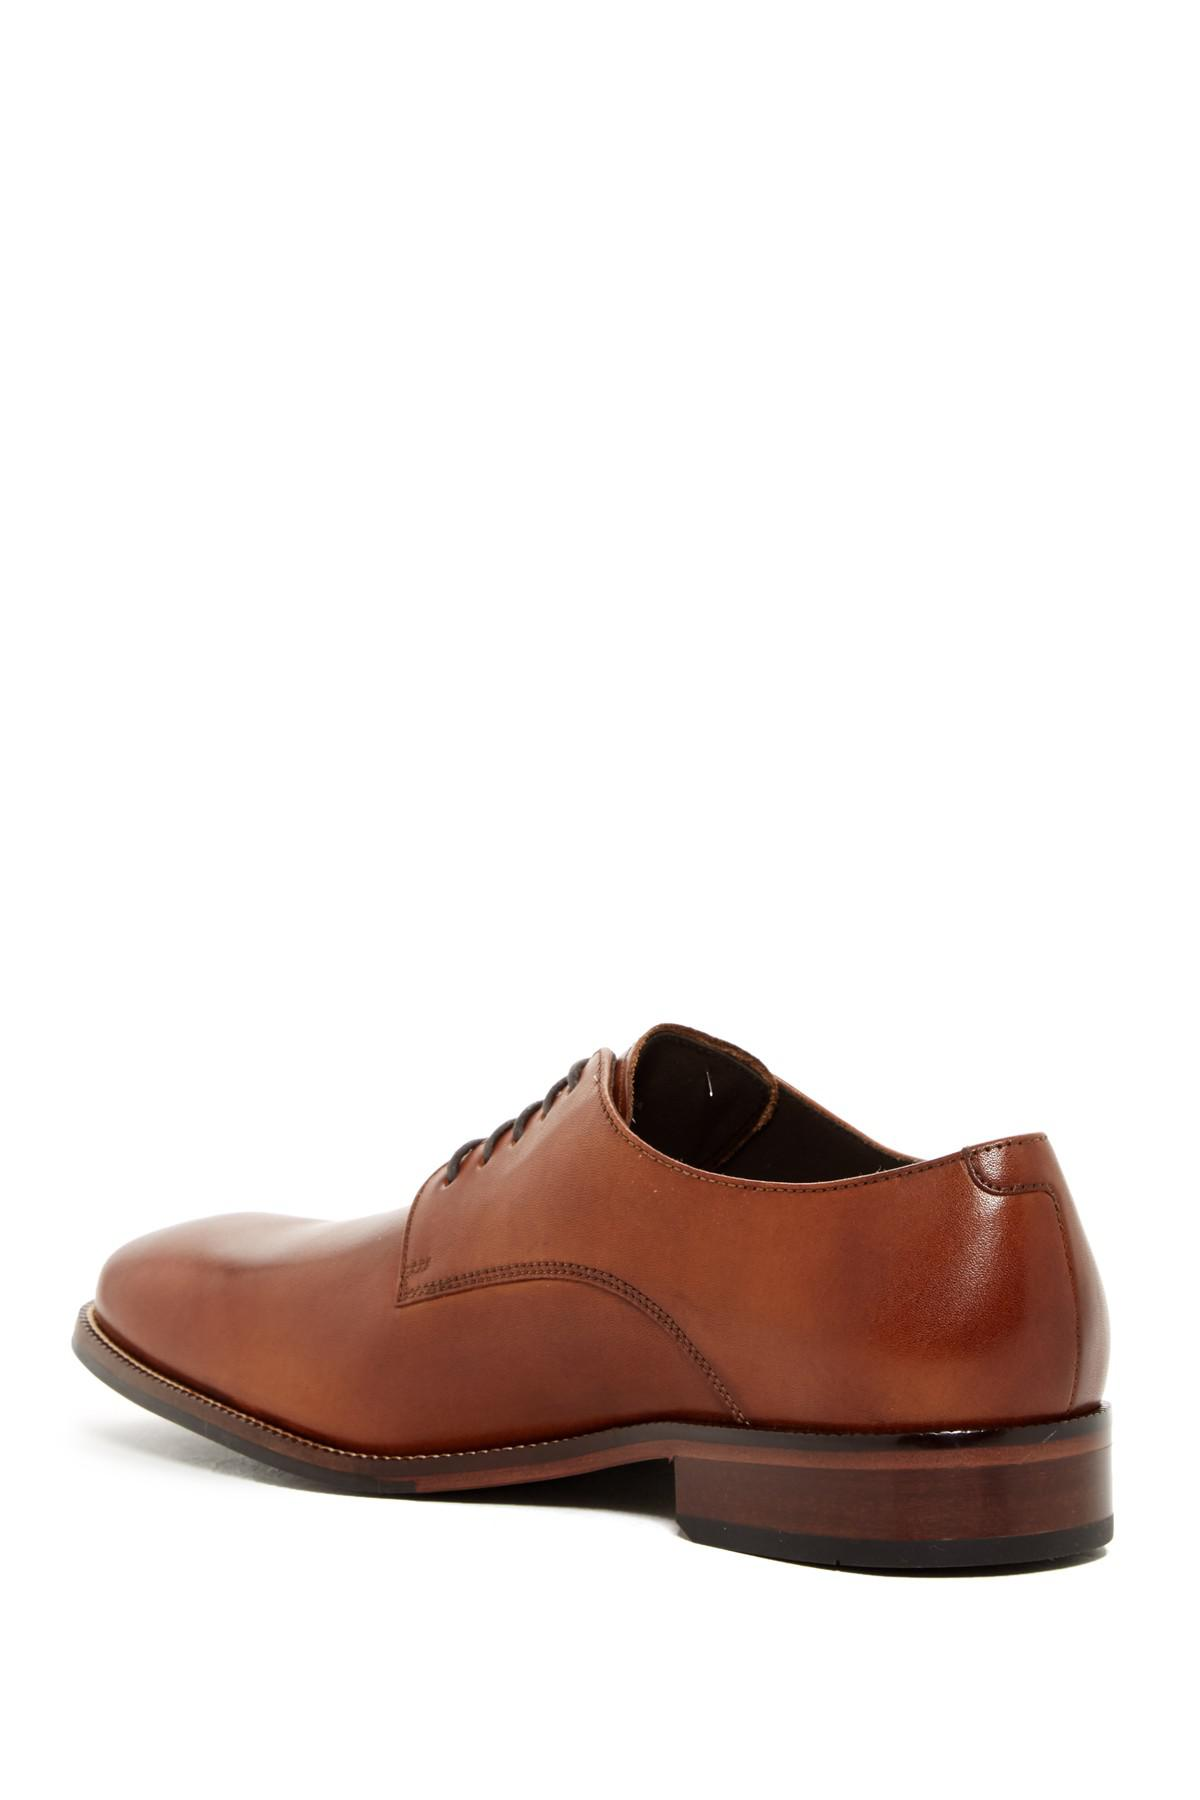 895dd200fa3 Cole Haan - Brown Benton Plain Oxford Ii - Wide Width Available for Men -  Lyst. View fullscreen